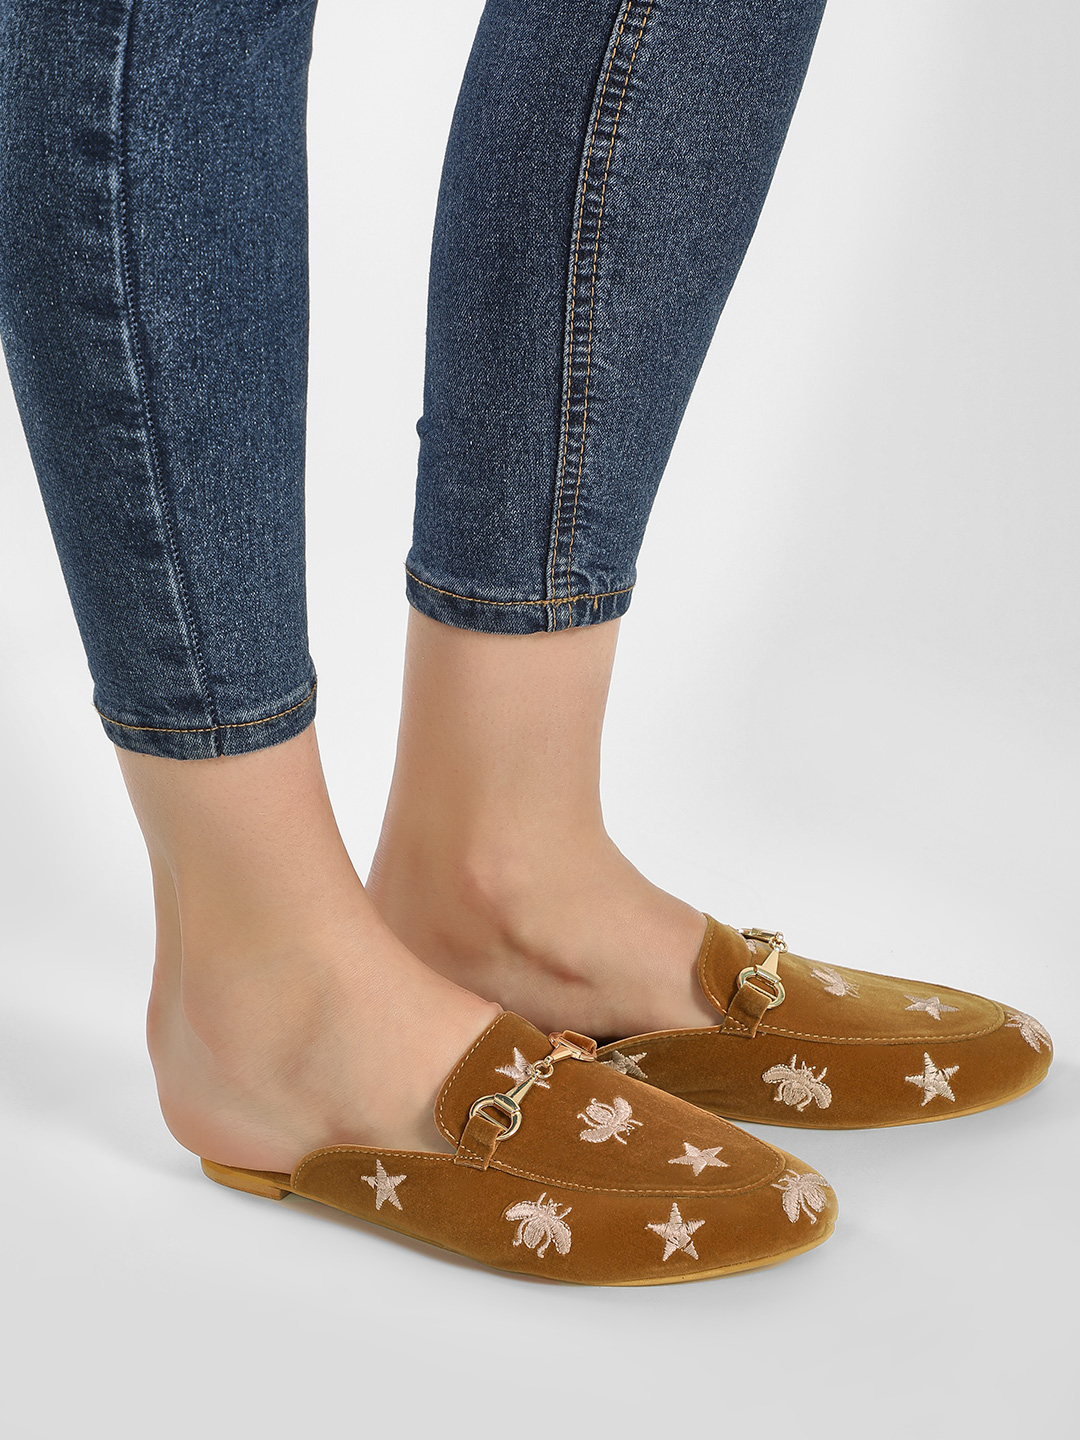 Sole Story Tan Embroidered Suede Horsebit Mules 1